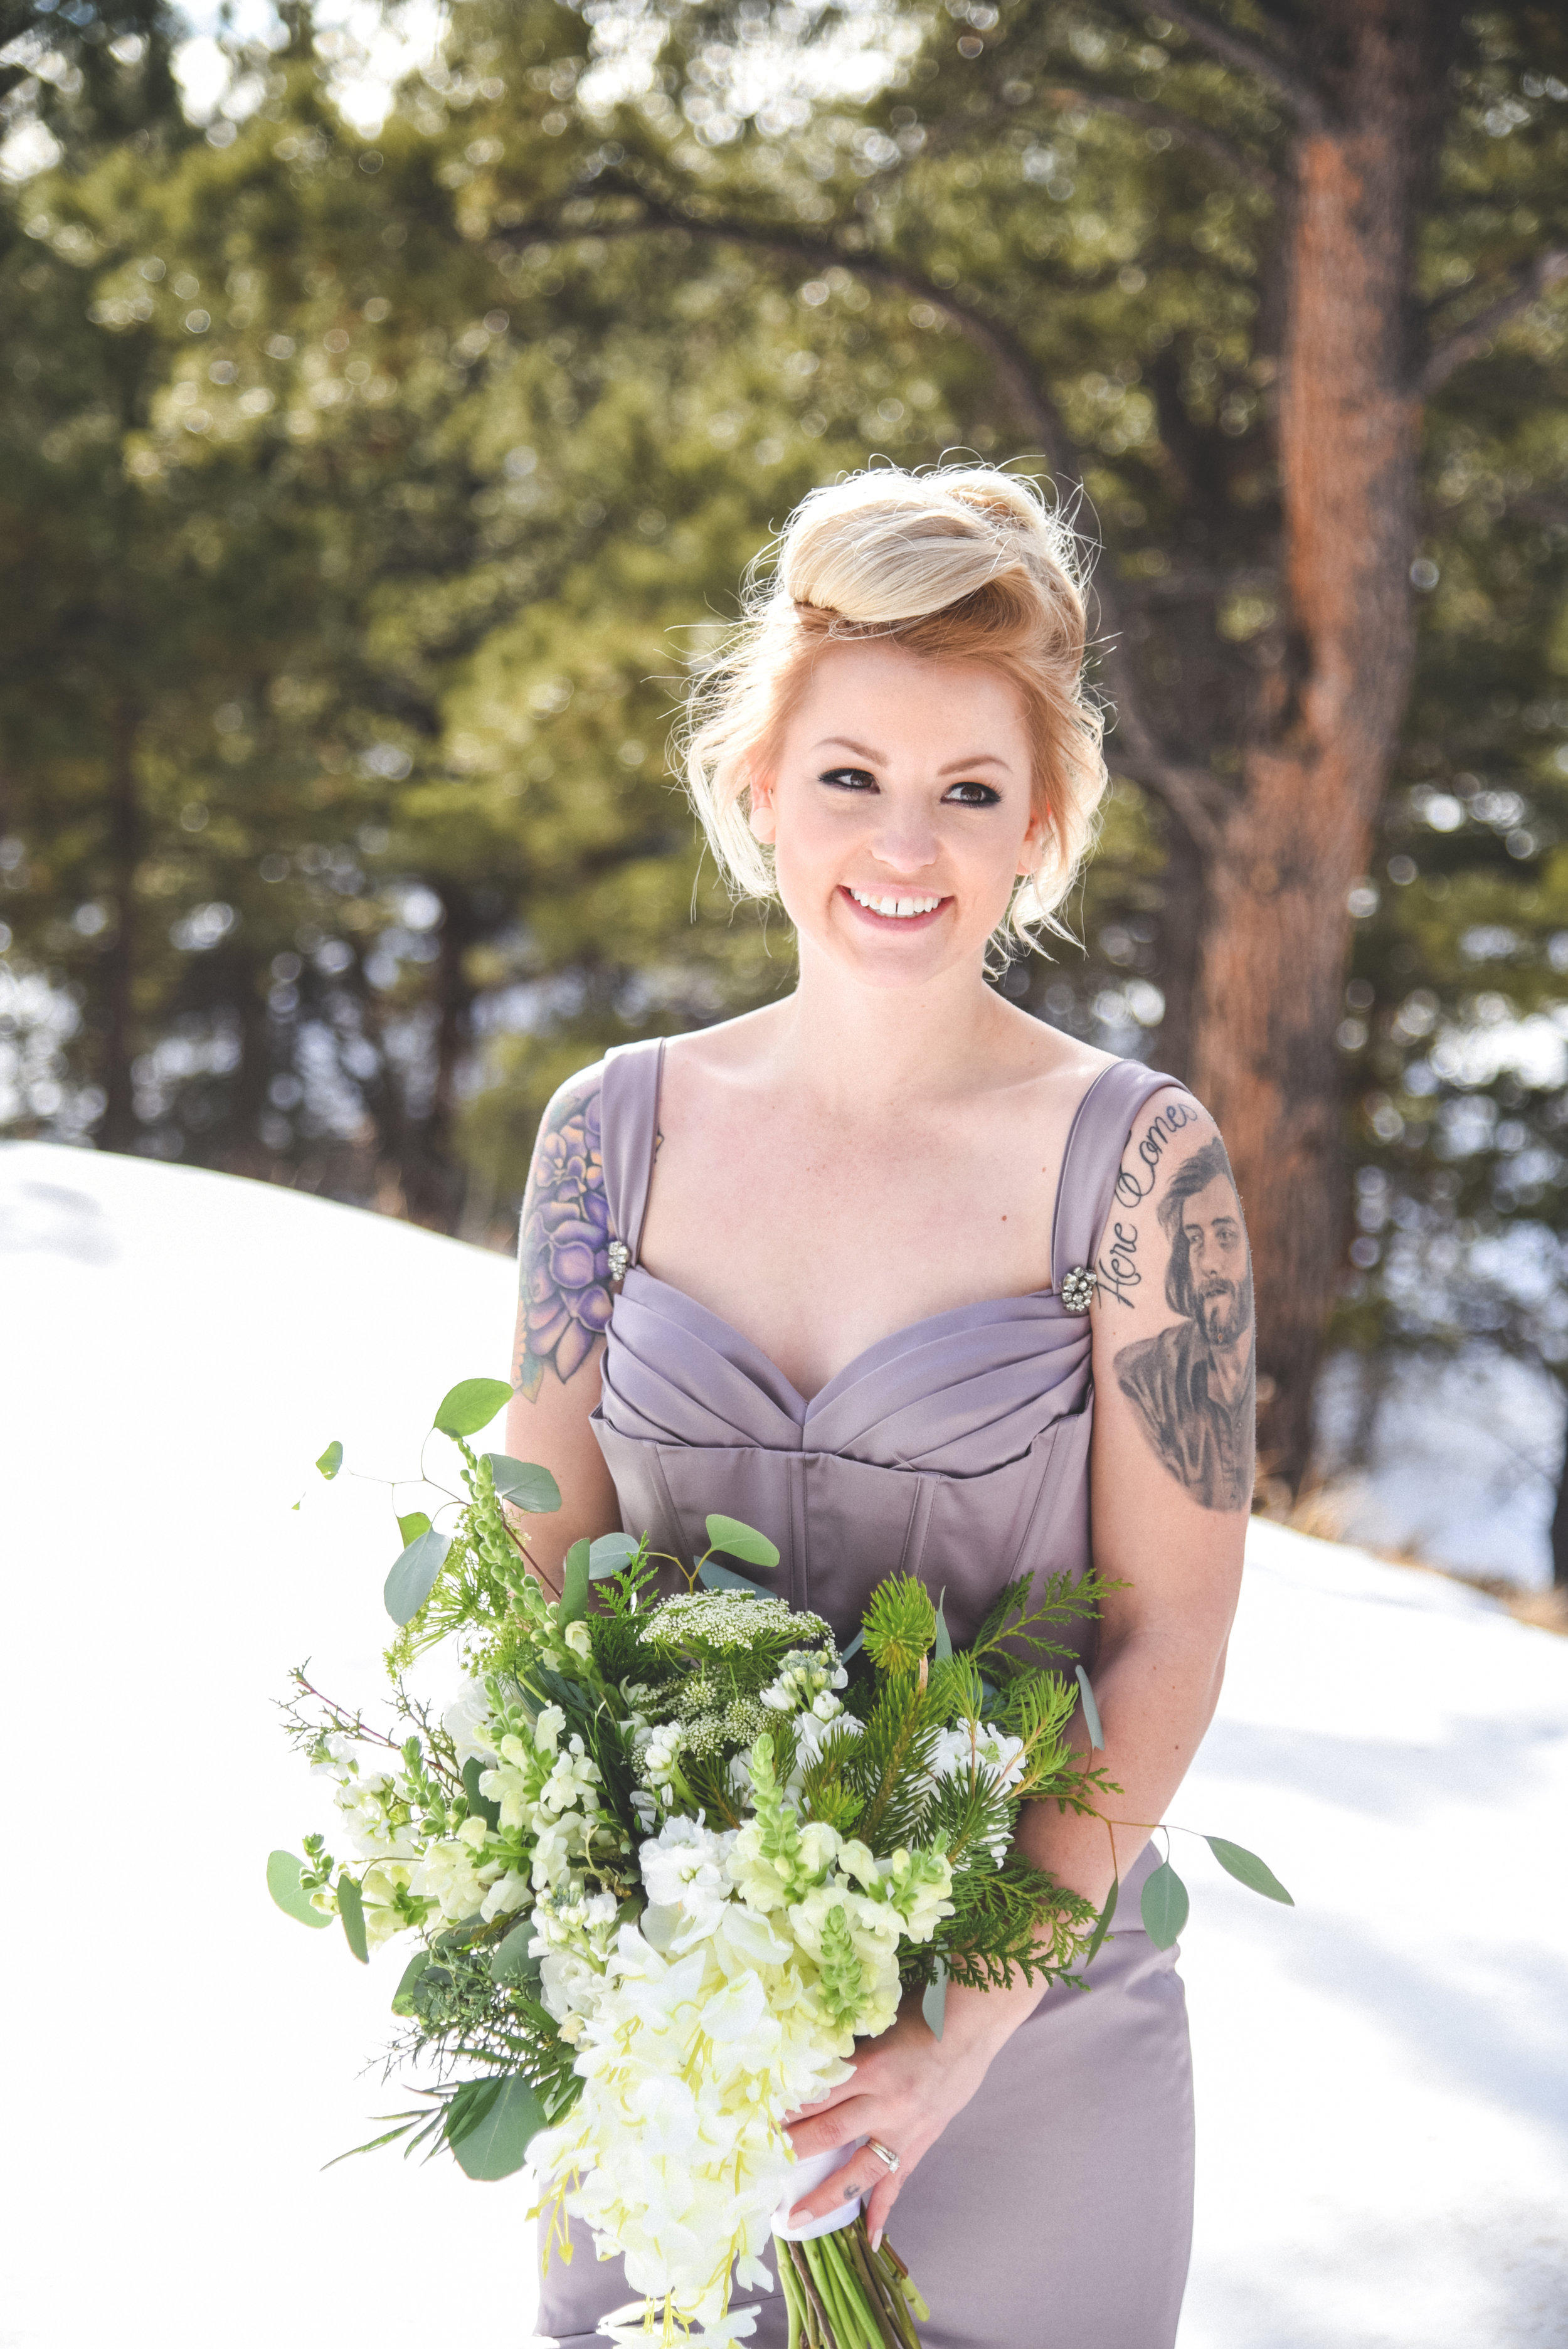 bride and groom portraits in the rocky mountains, alternative bride and groom in colorado, Mountain Wedding in Colorado, Colorado Wedding Photographer, Denver Wedding Photographer, Intimate Colorado Wedding Photographer, Rocky Mountain Wedding Photographer